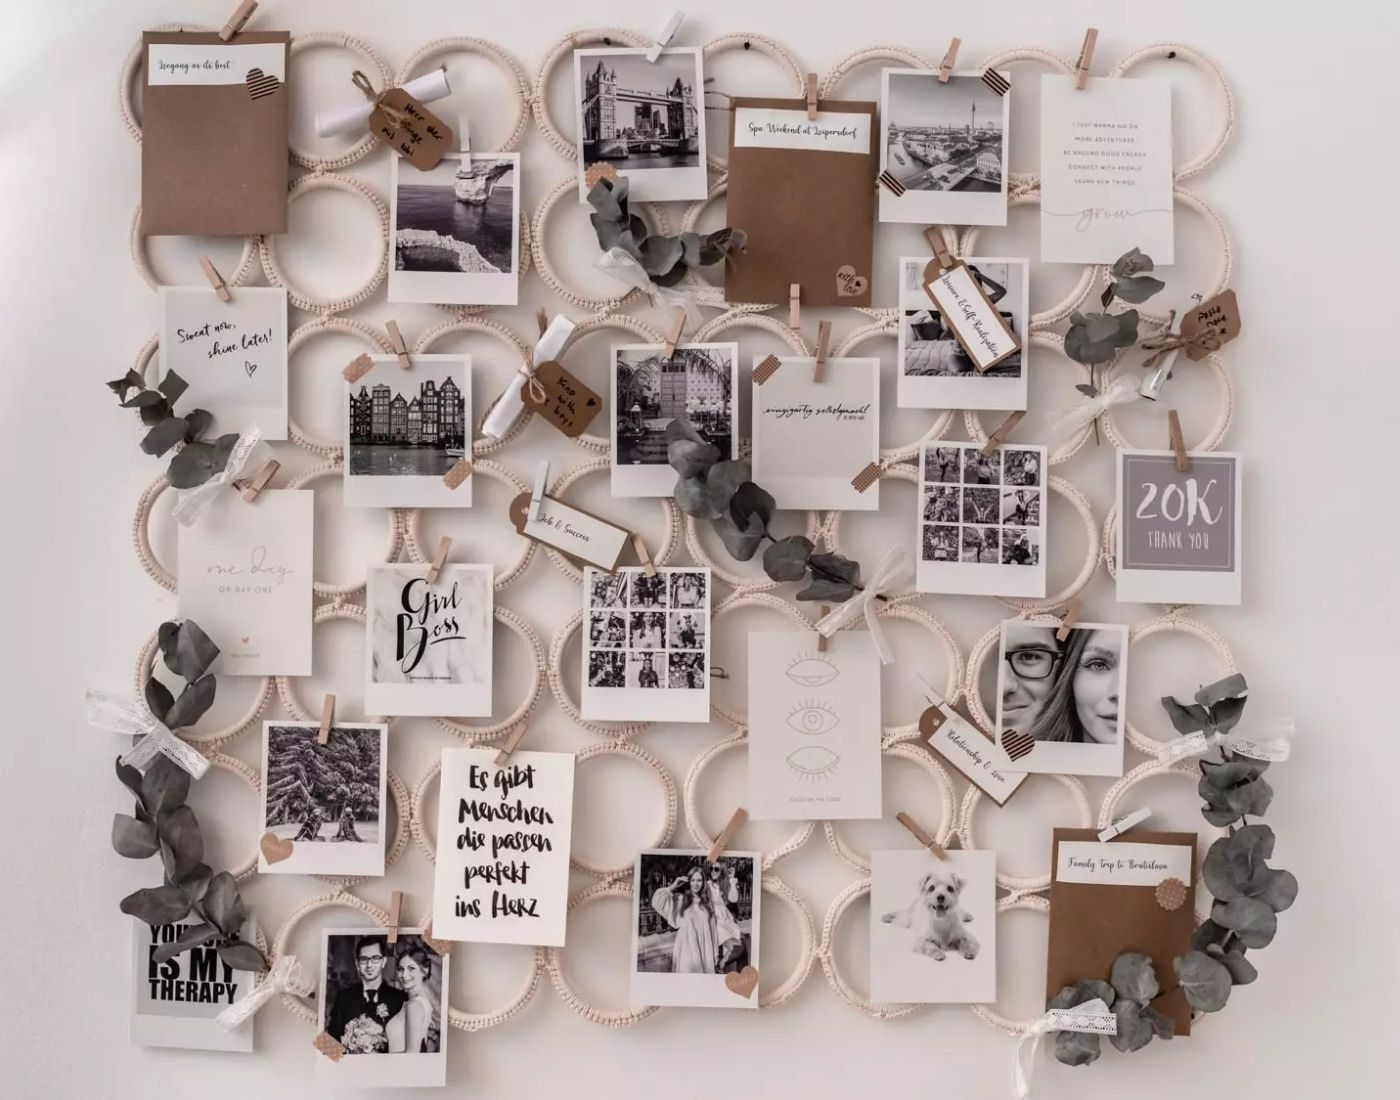 Vision Board_Mood Board_Analog Board with Photos and Leaves